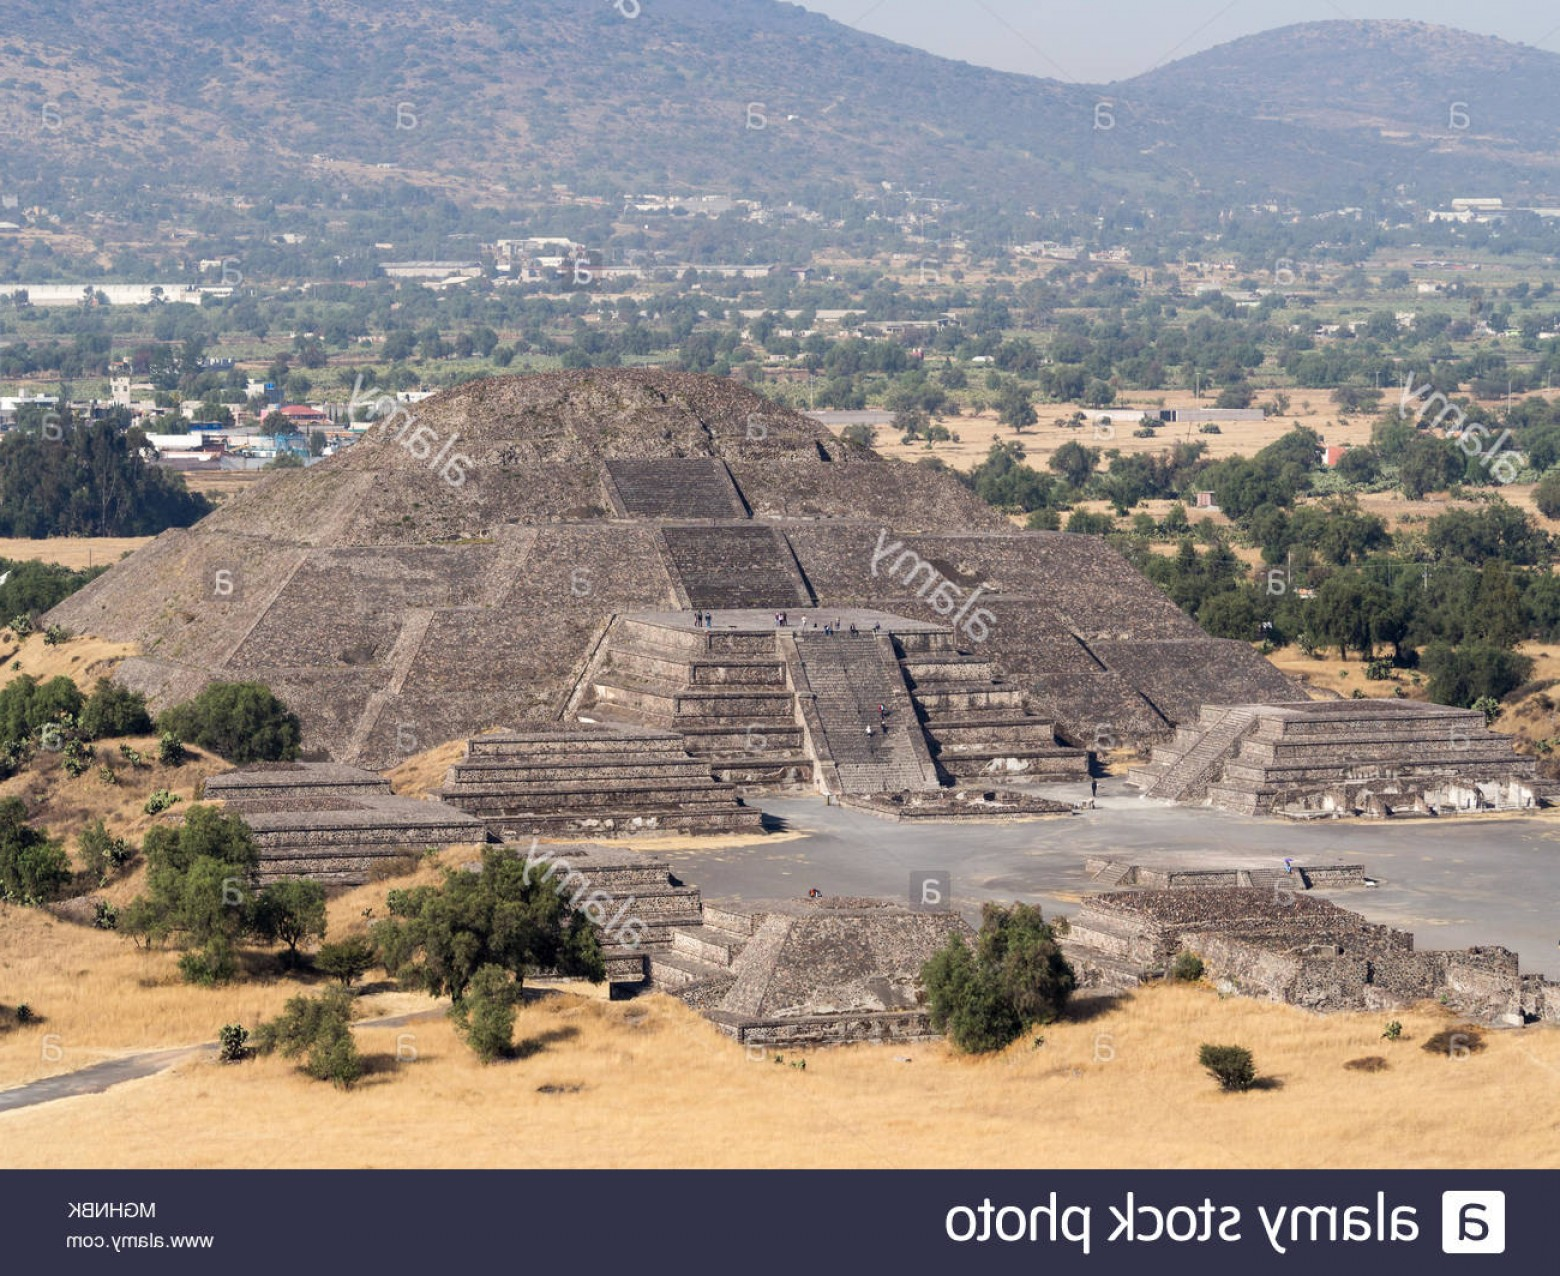 Vector South America Ancient Ruins: Teotihuacan Mexico City Mexico South America The Great Pyramid Of Sun And Moon Views On Ancient City Ruins Of Teotihuacan Pyramid Image